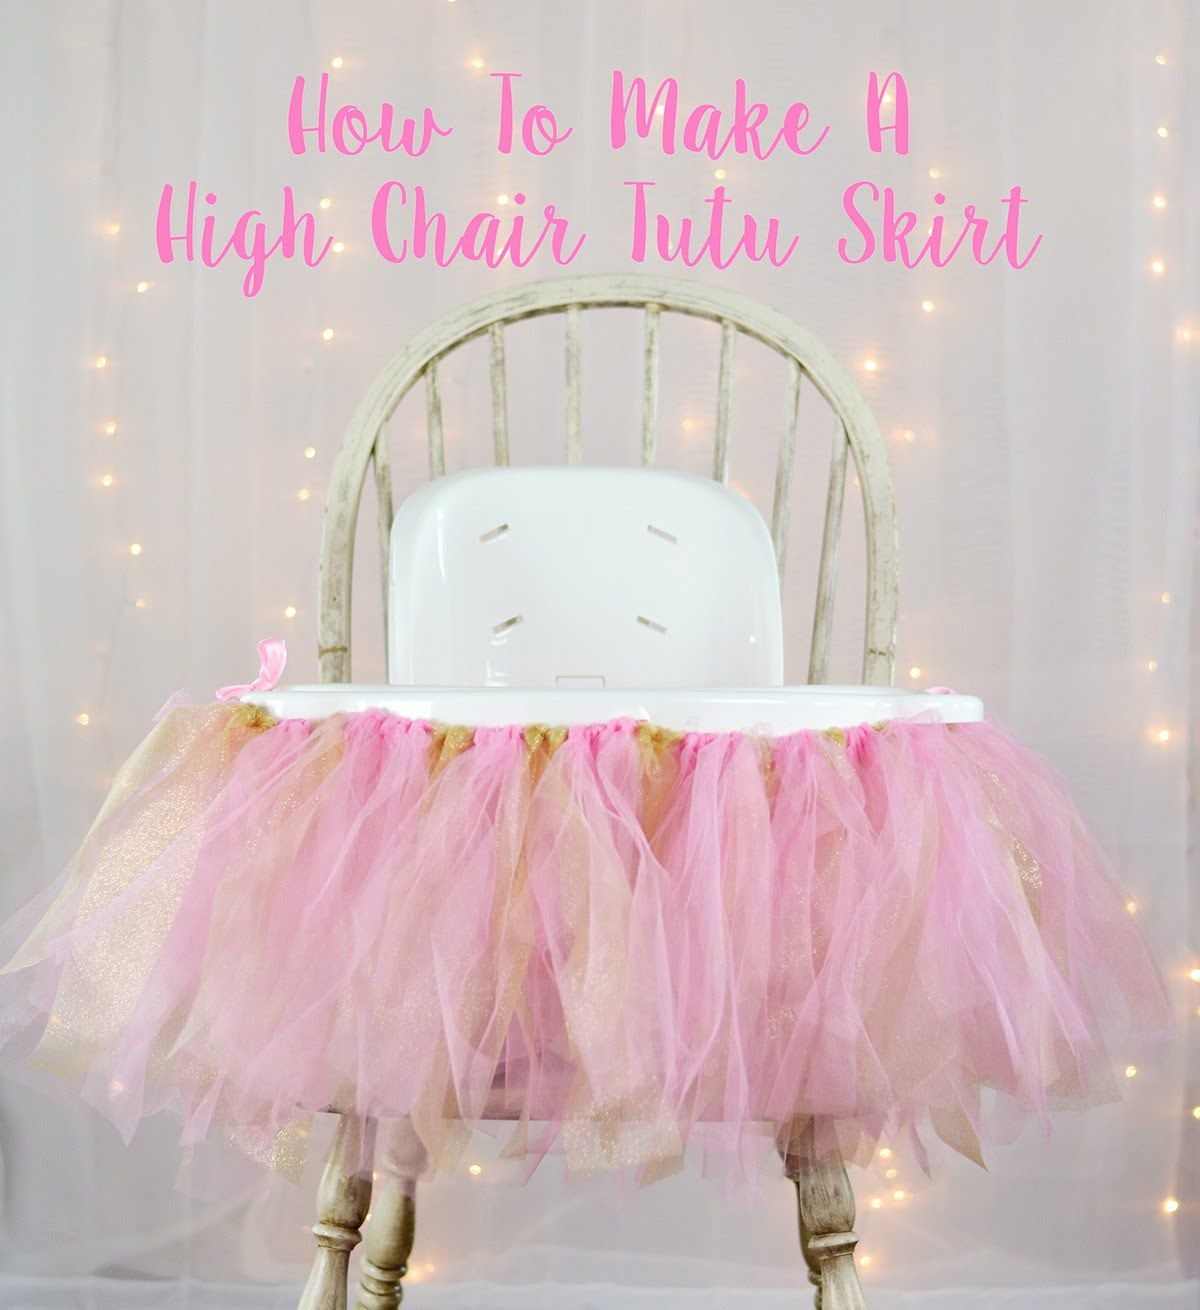 How To Make A High Chair Tutu Skirt